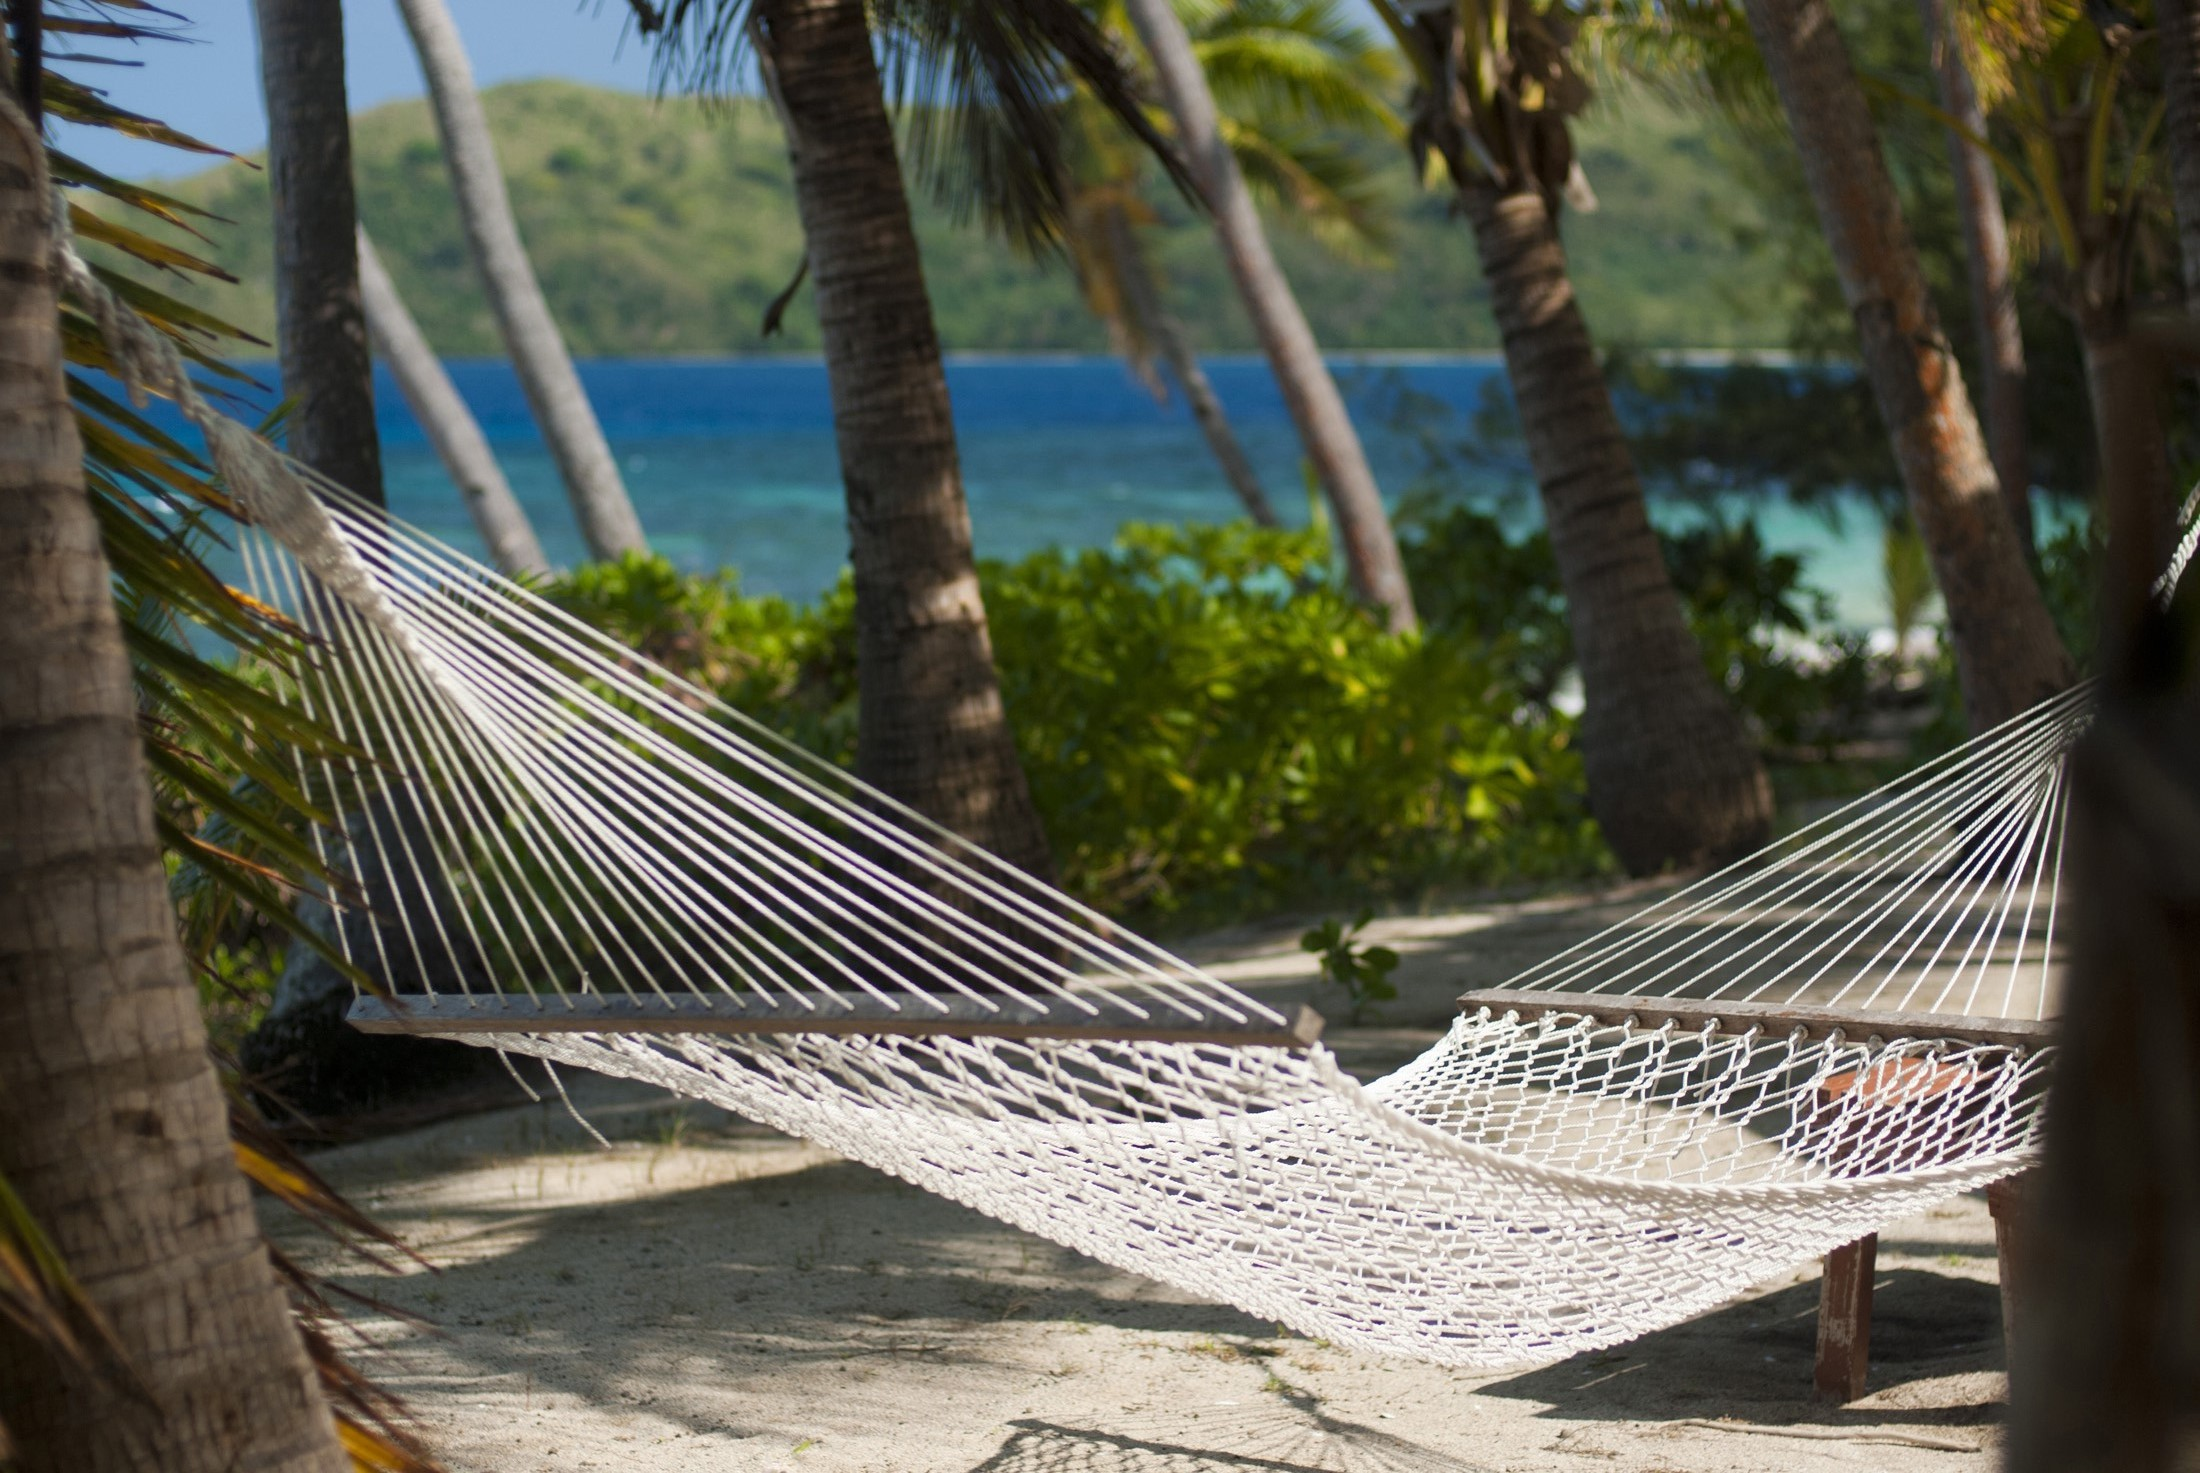 Empty hammock strung from palm trees overlooking a blue ocean on an idyllic tropical island